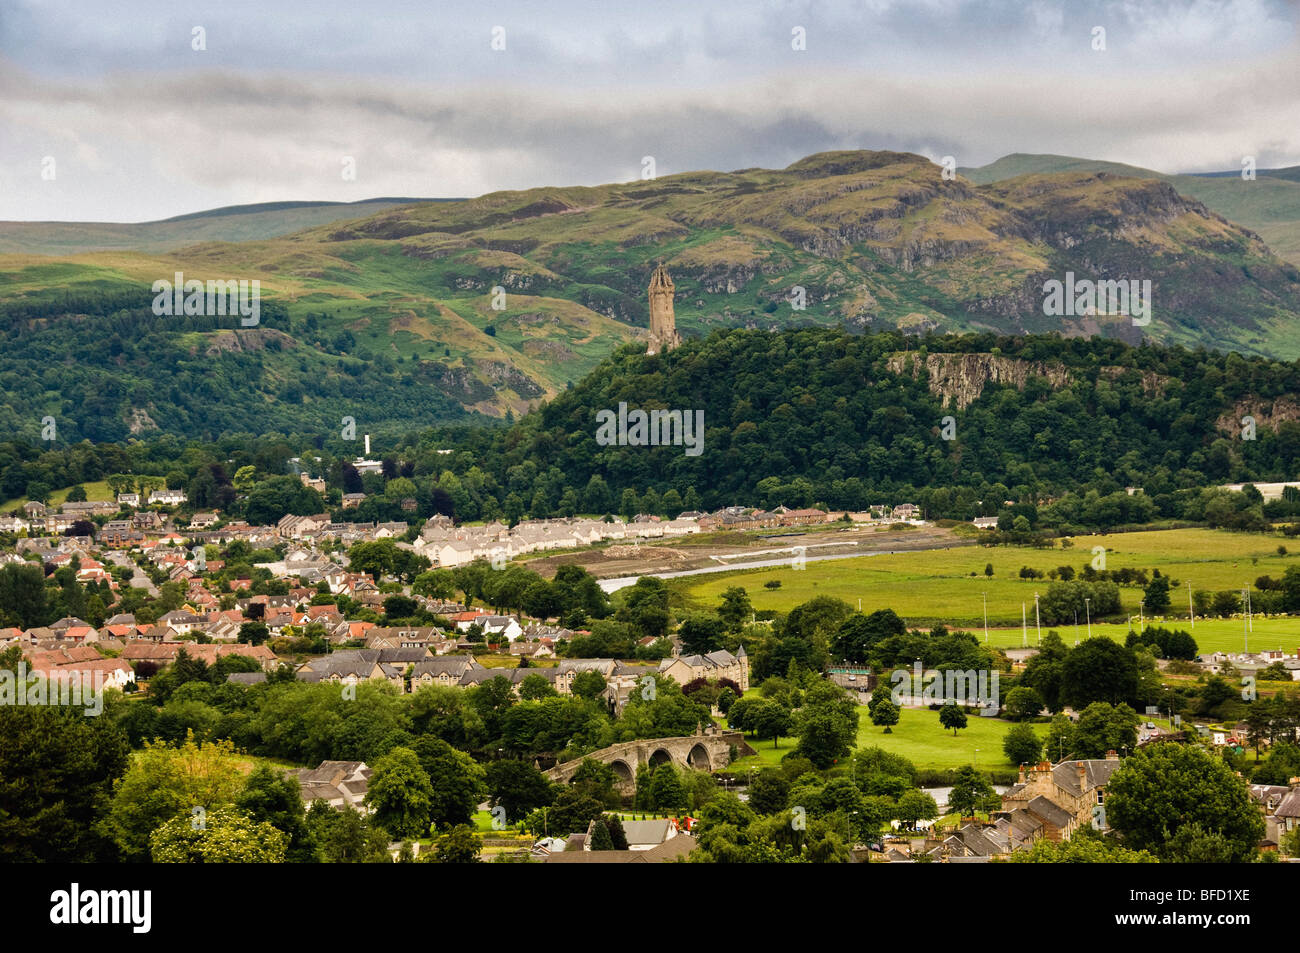 Wallis monument surrounded by trees with from Stirling houses in the foreground. - Stock Image